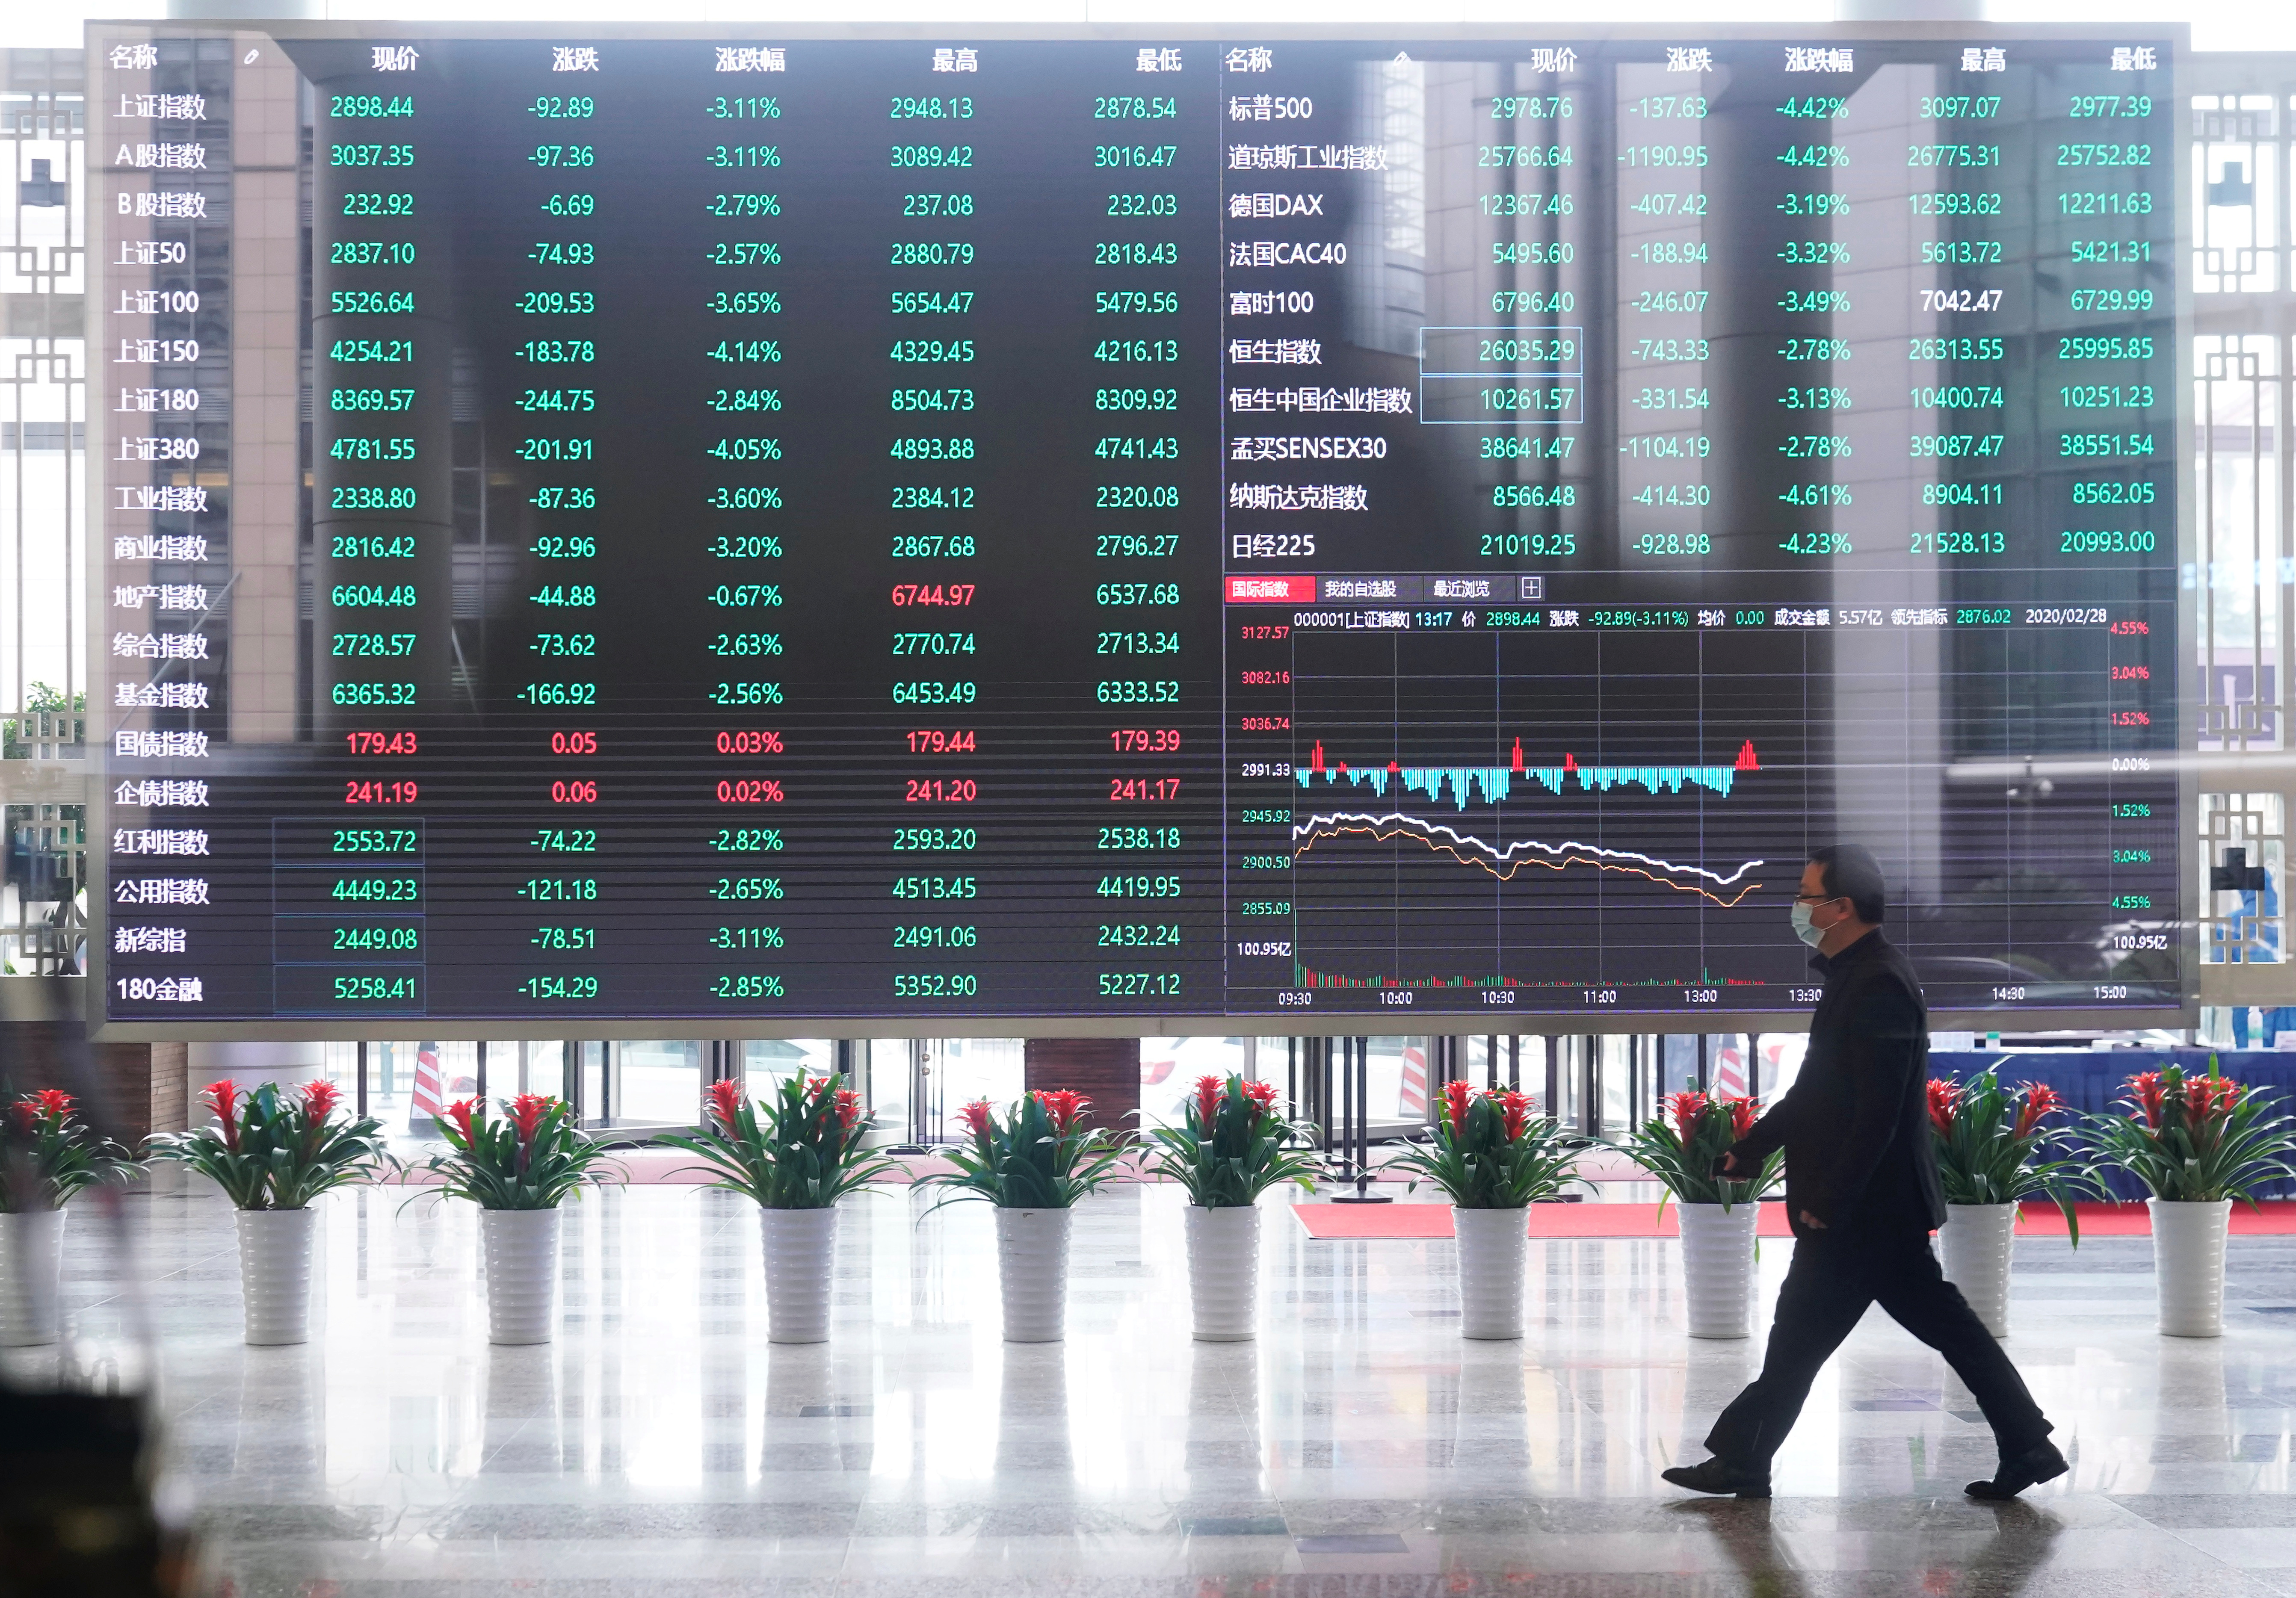 A man wearing a face mask is seen inside the Shanghai Stock Exchange building, as the country is hit by a novel coronavirus outbreak, at the Pudong financial district in Shanghai, China February 28, 2020.  REUTERS/Aly Song